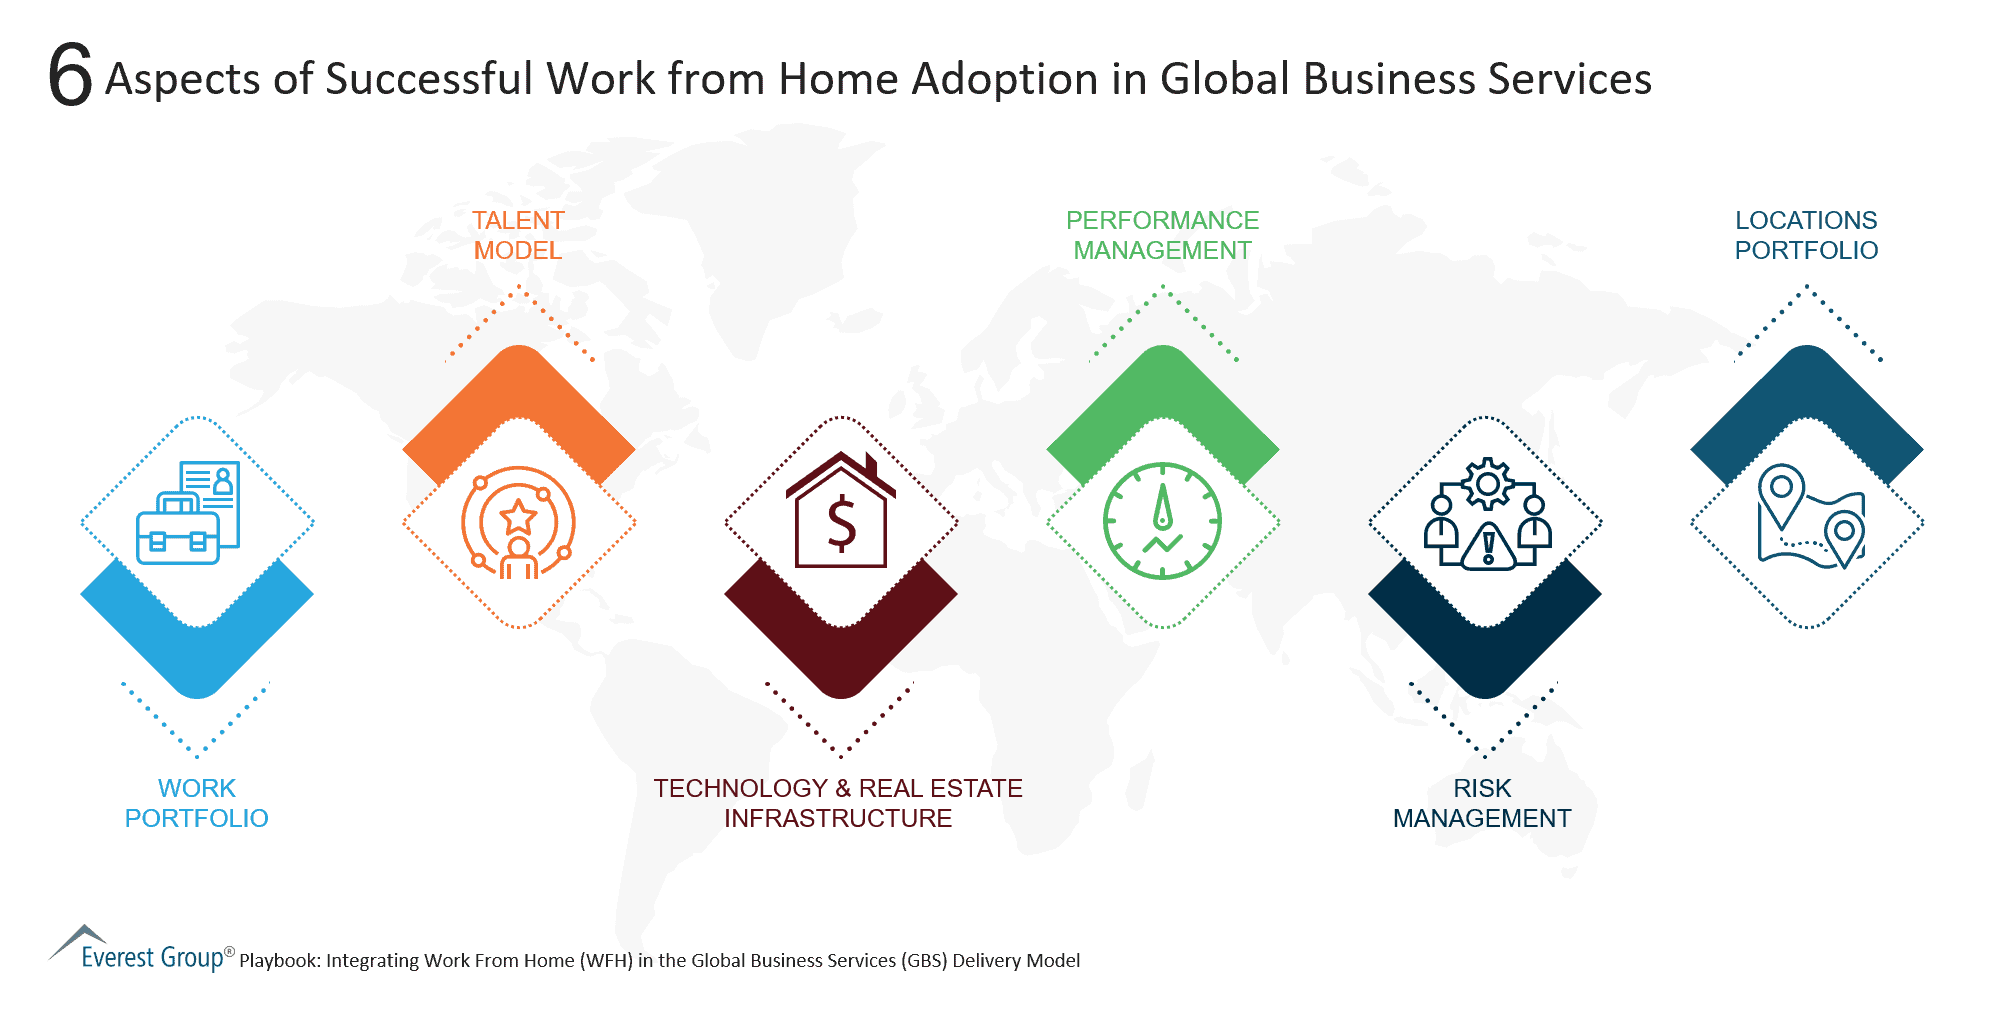 6 Aspects of Successful Work from Home Adoption in Global Business Services